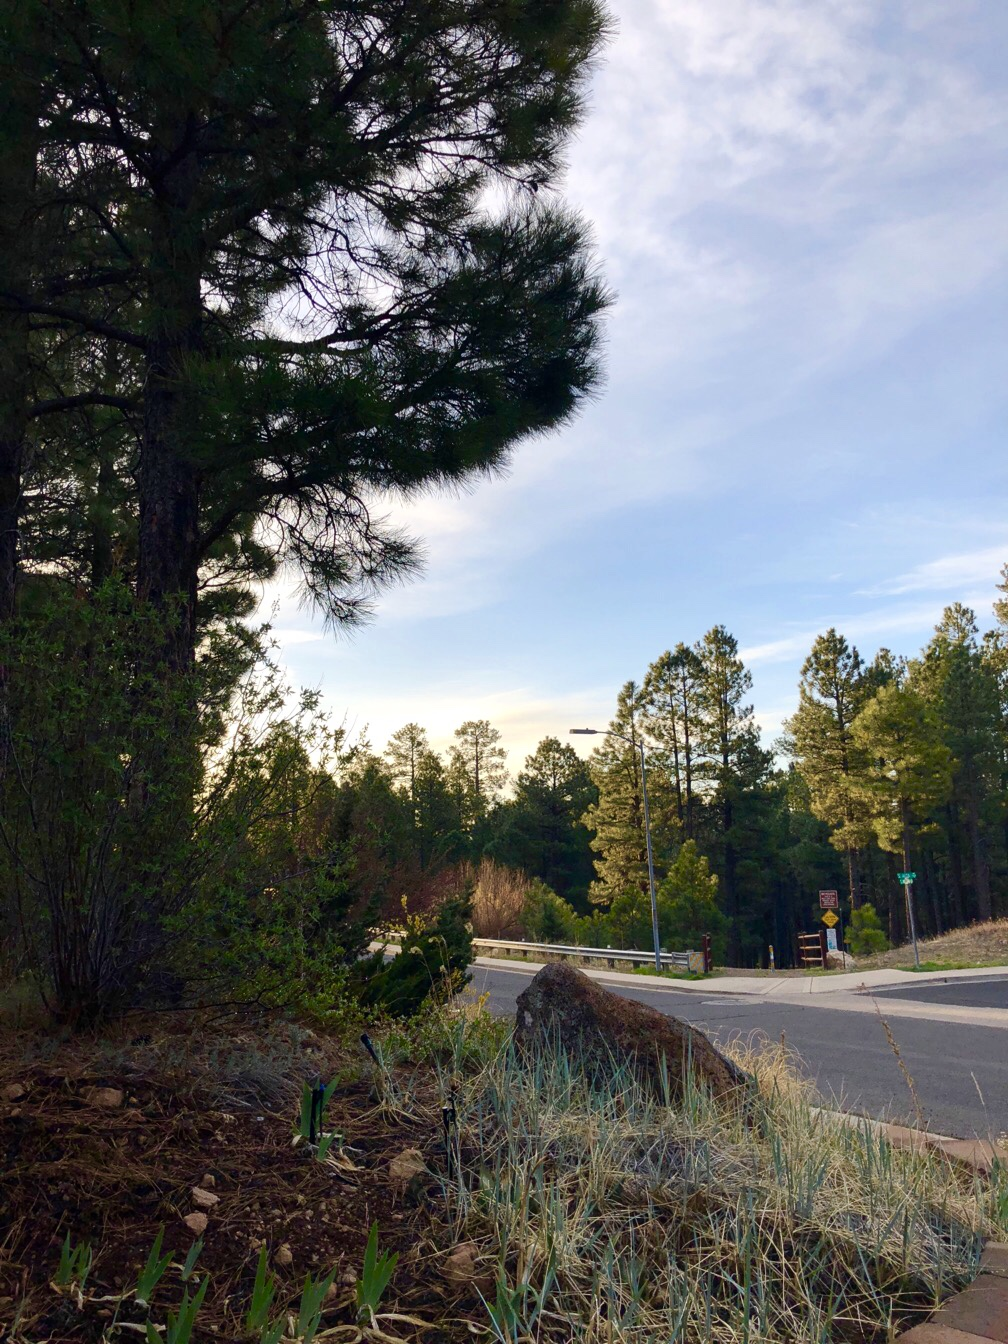 View of a street and trailhead in the morning, with lots of ponderosa pines.